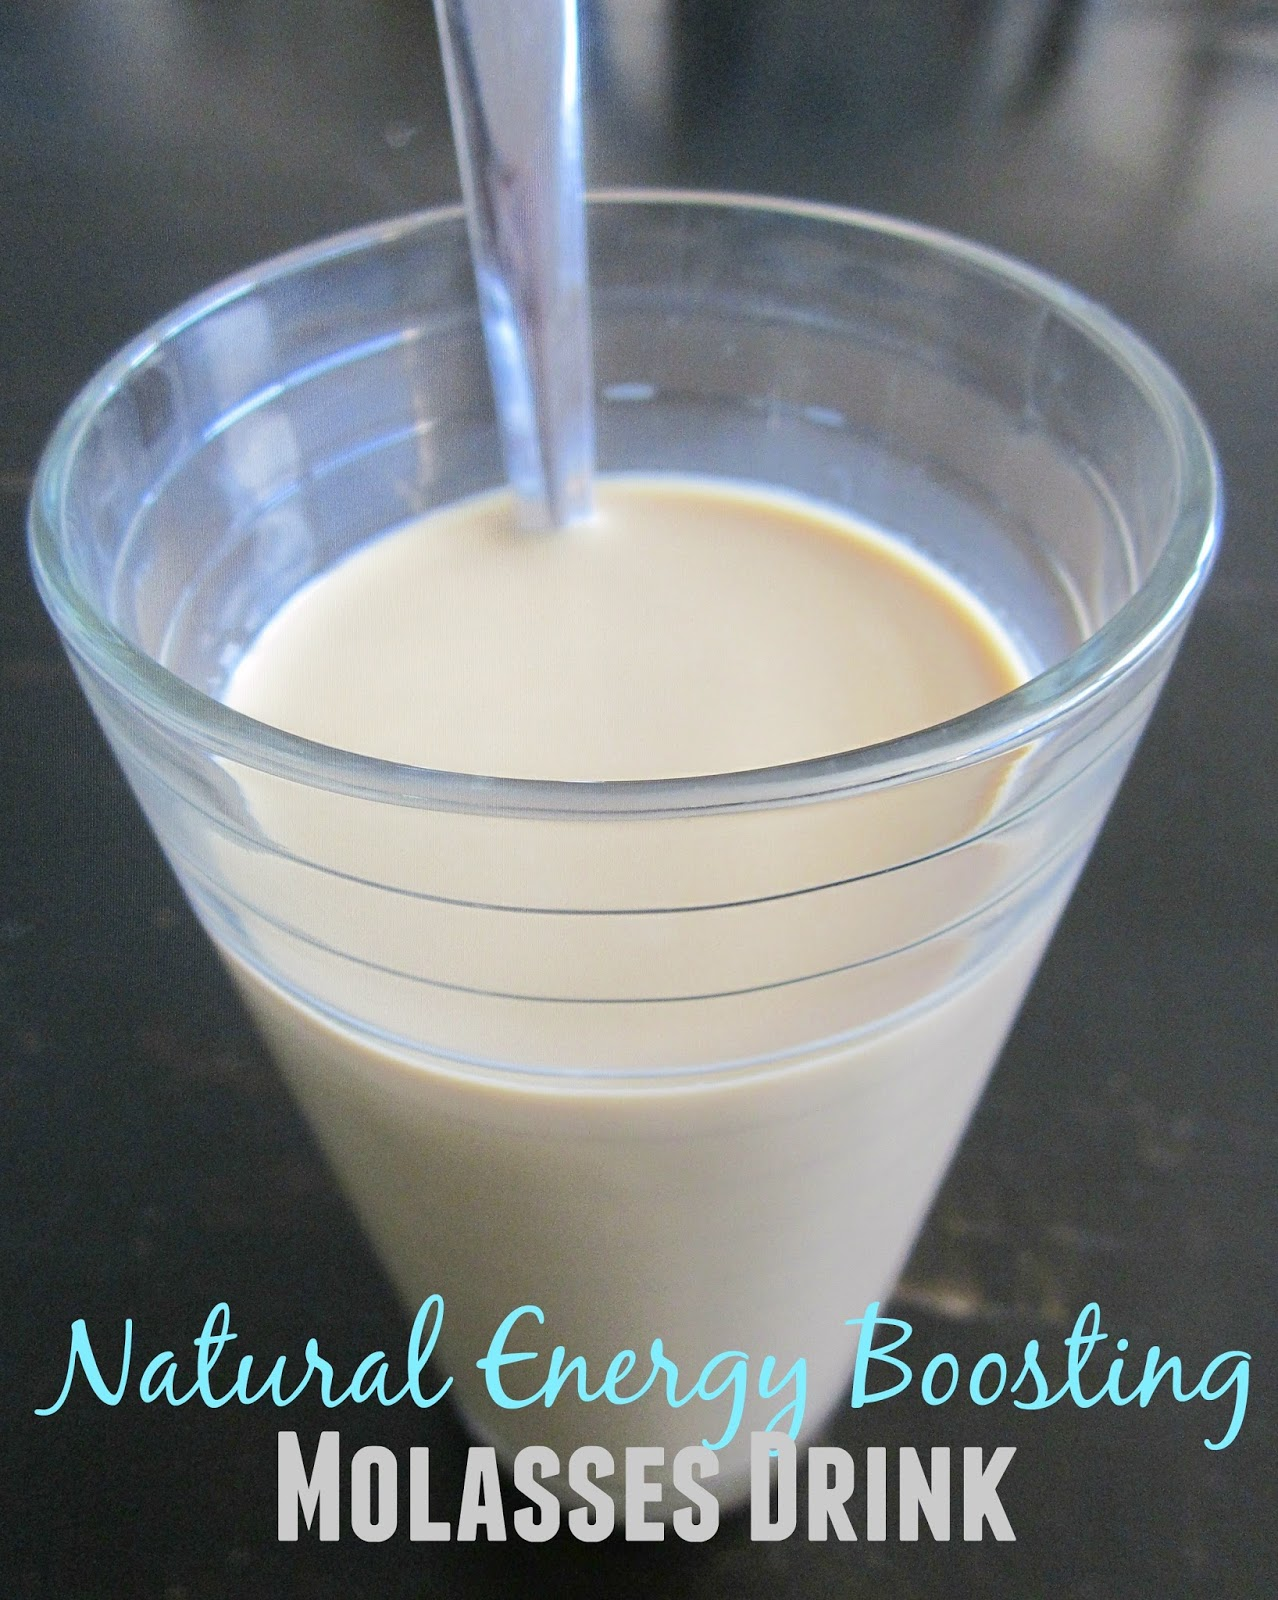 natural energy boosting molasses drink